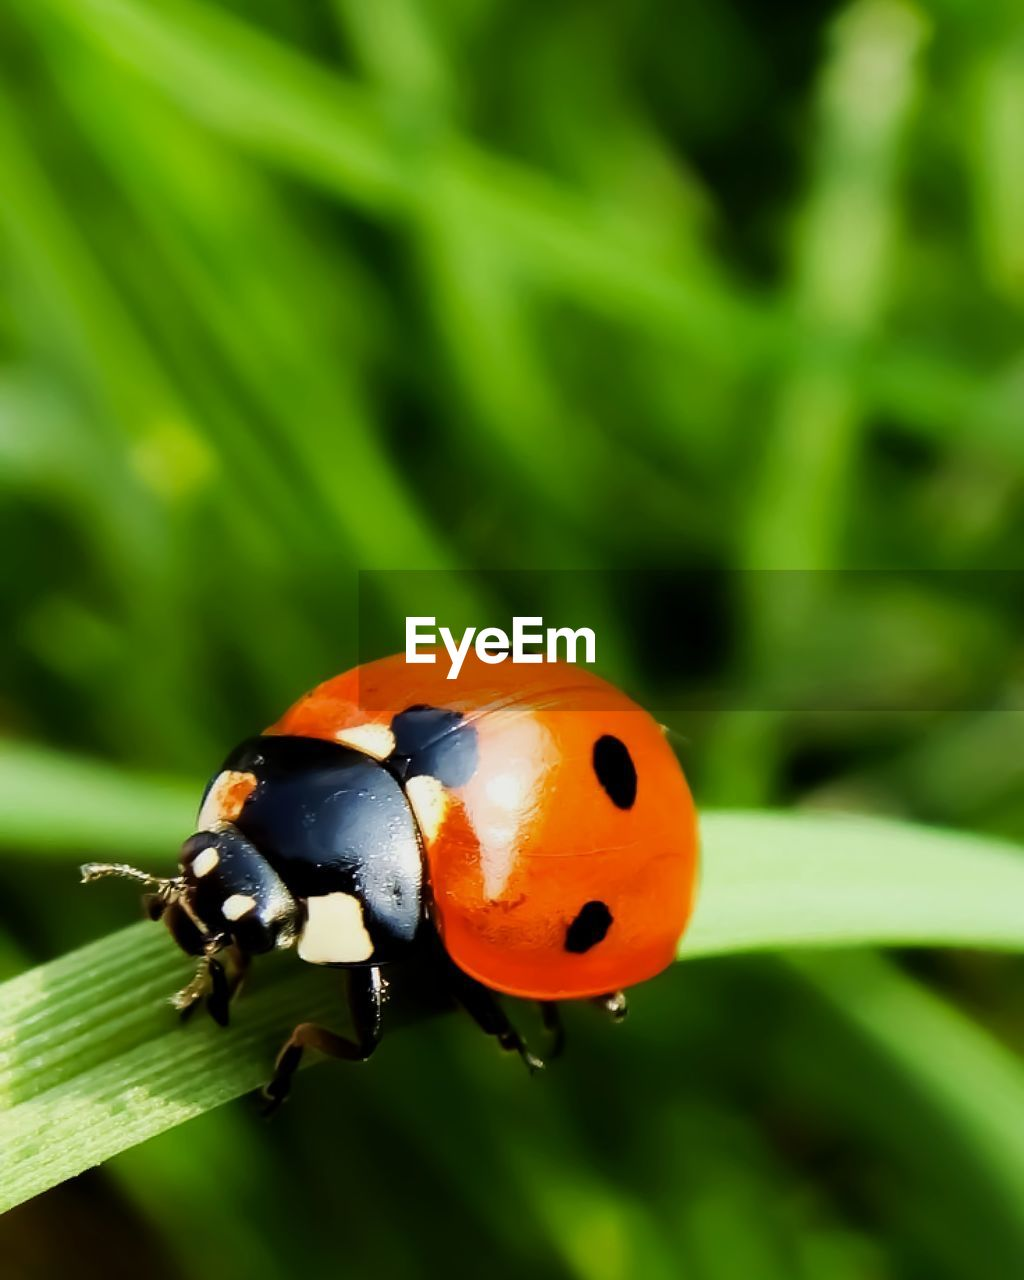 animal themes, animal wildlife, animals in the wild, animal, one animal, insect, invertebrate, ladybug, beetle, focus on foreground, close-up, no people, nature, orange color, day, green color, plant, spotted, outdoors, beauty in nature, small